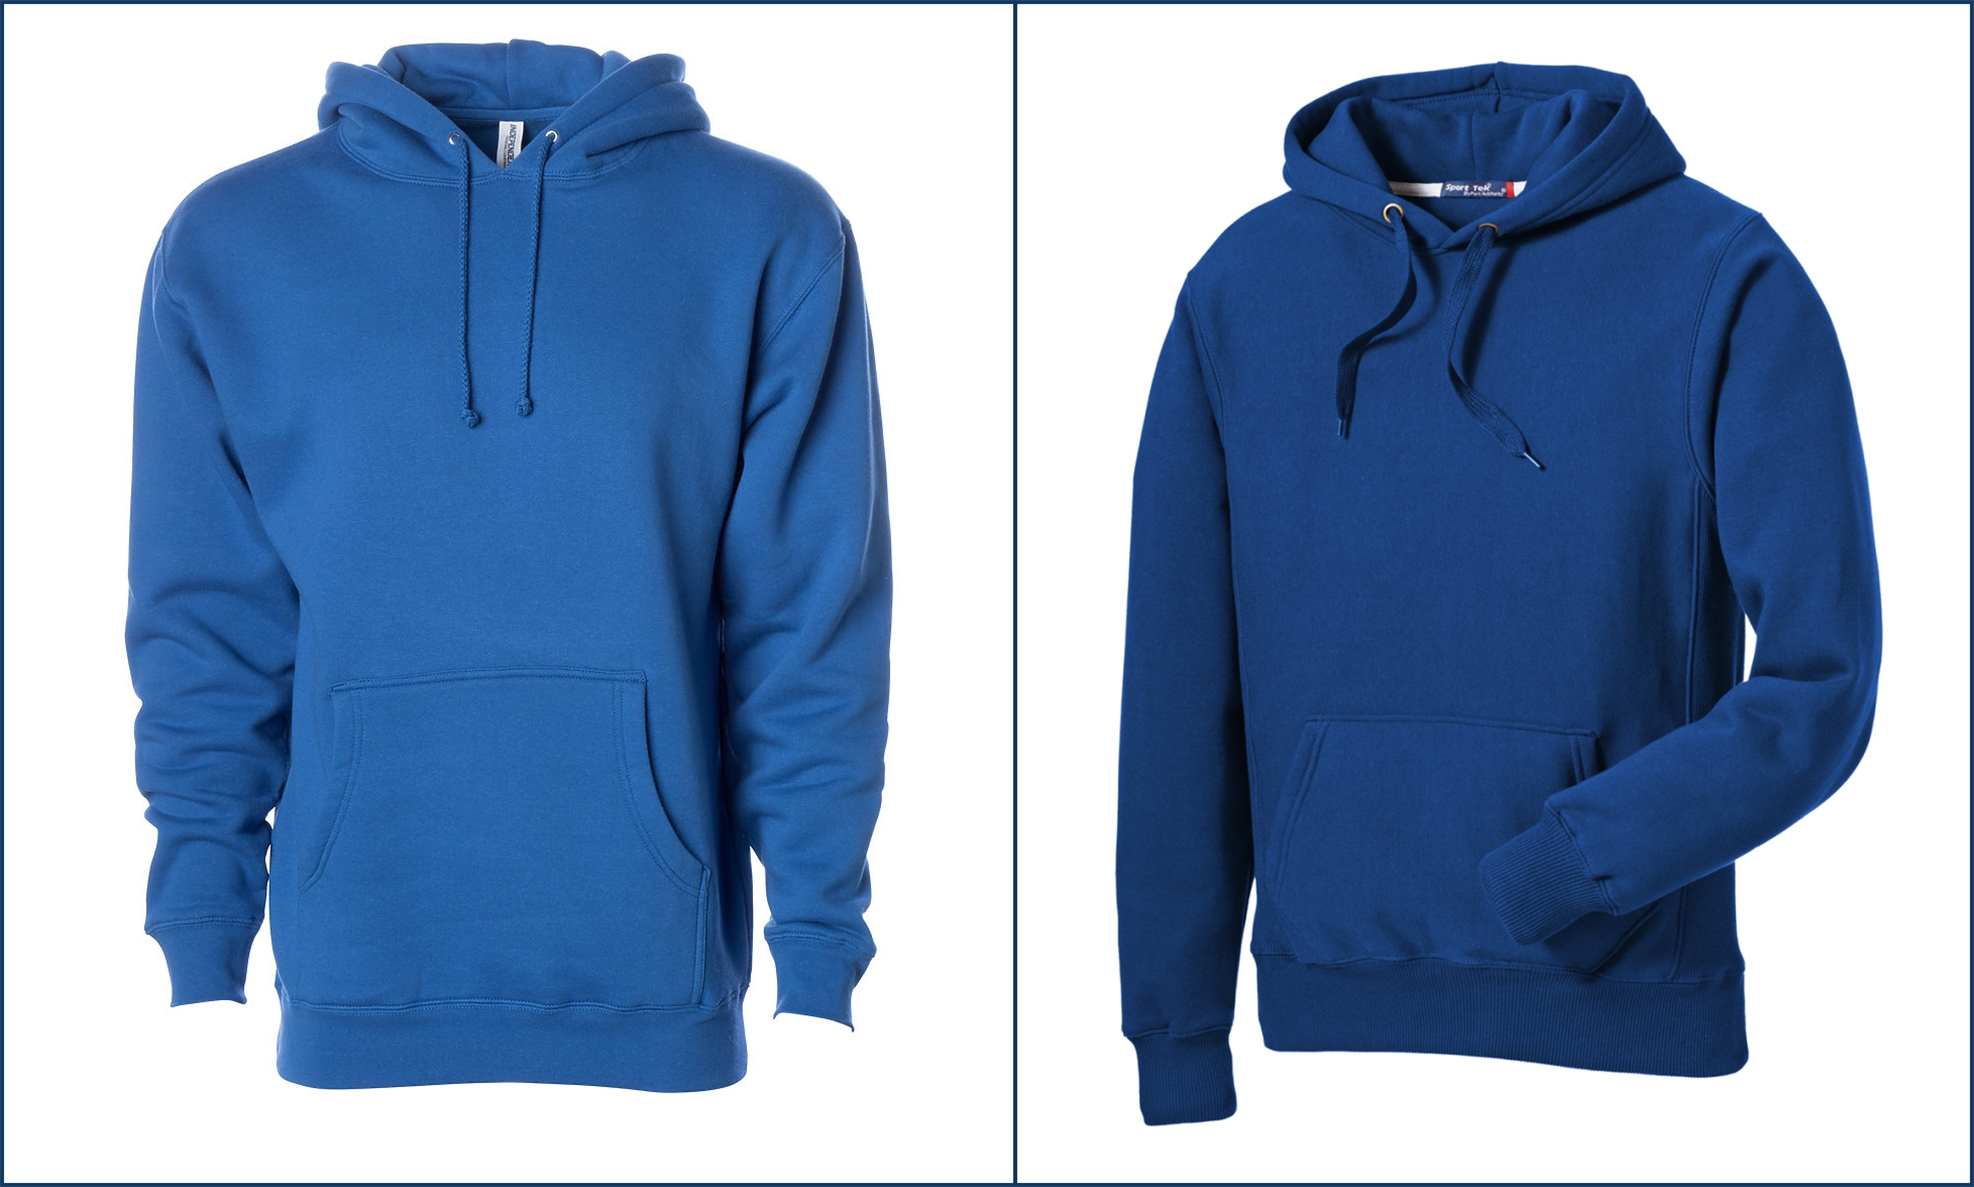 Classic Blue Hoodies from NYFifth